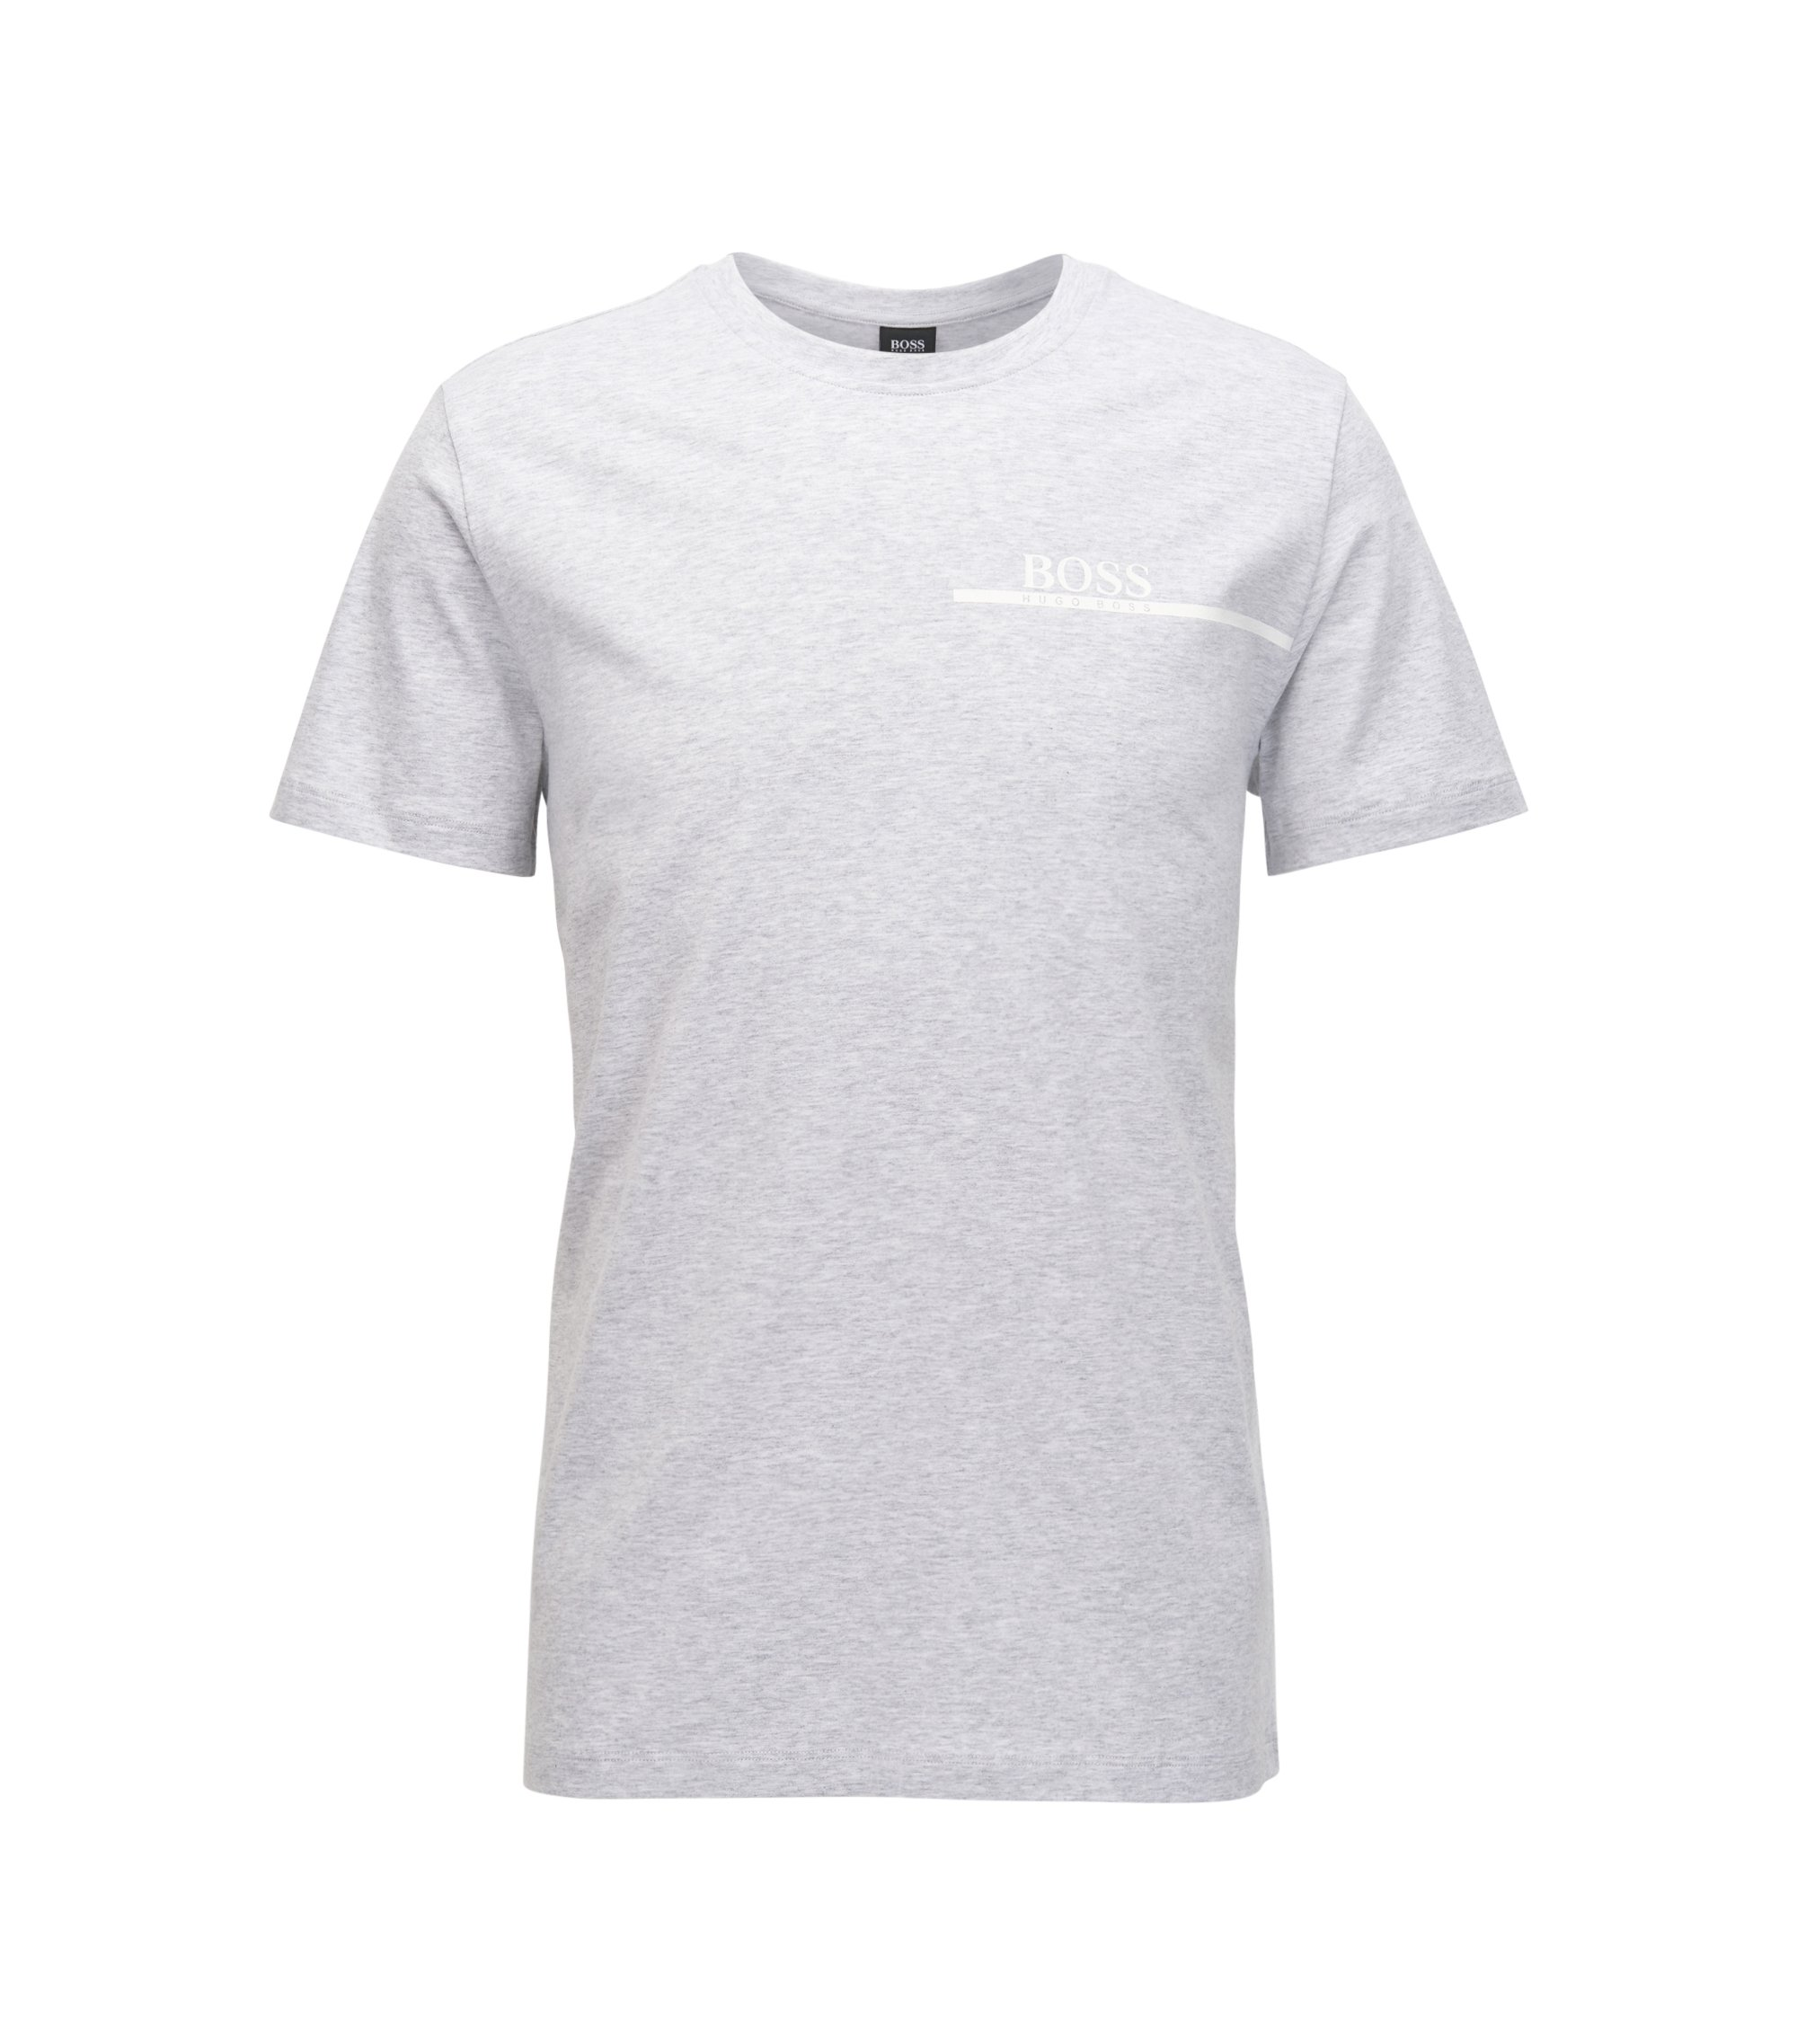 T-shirt relaxed fit in cotone con logo stampato, Argento